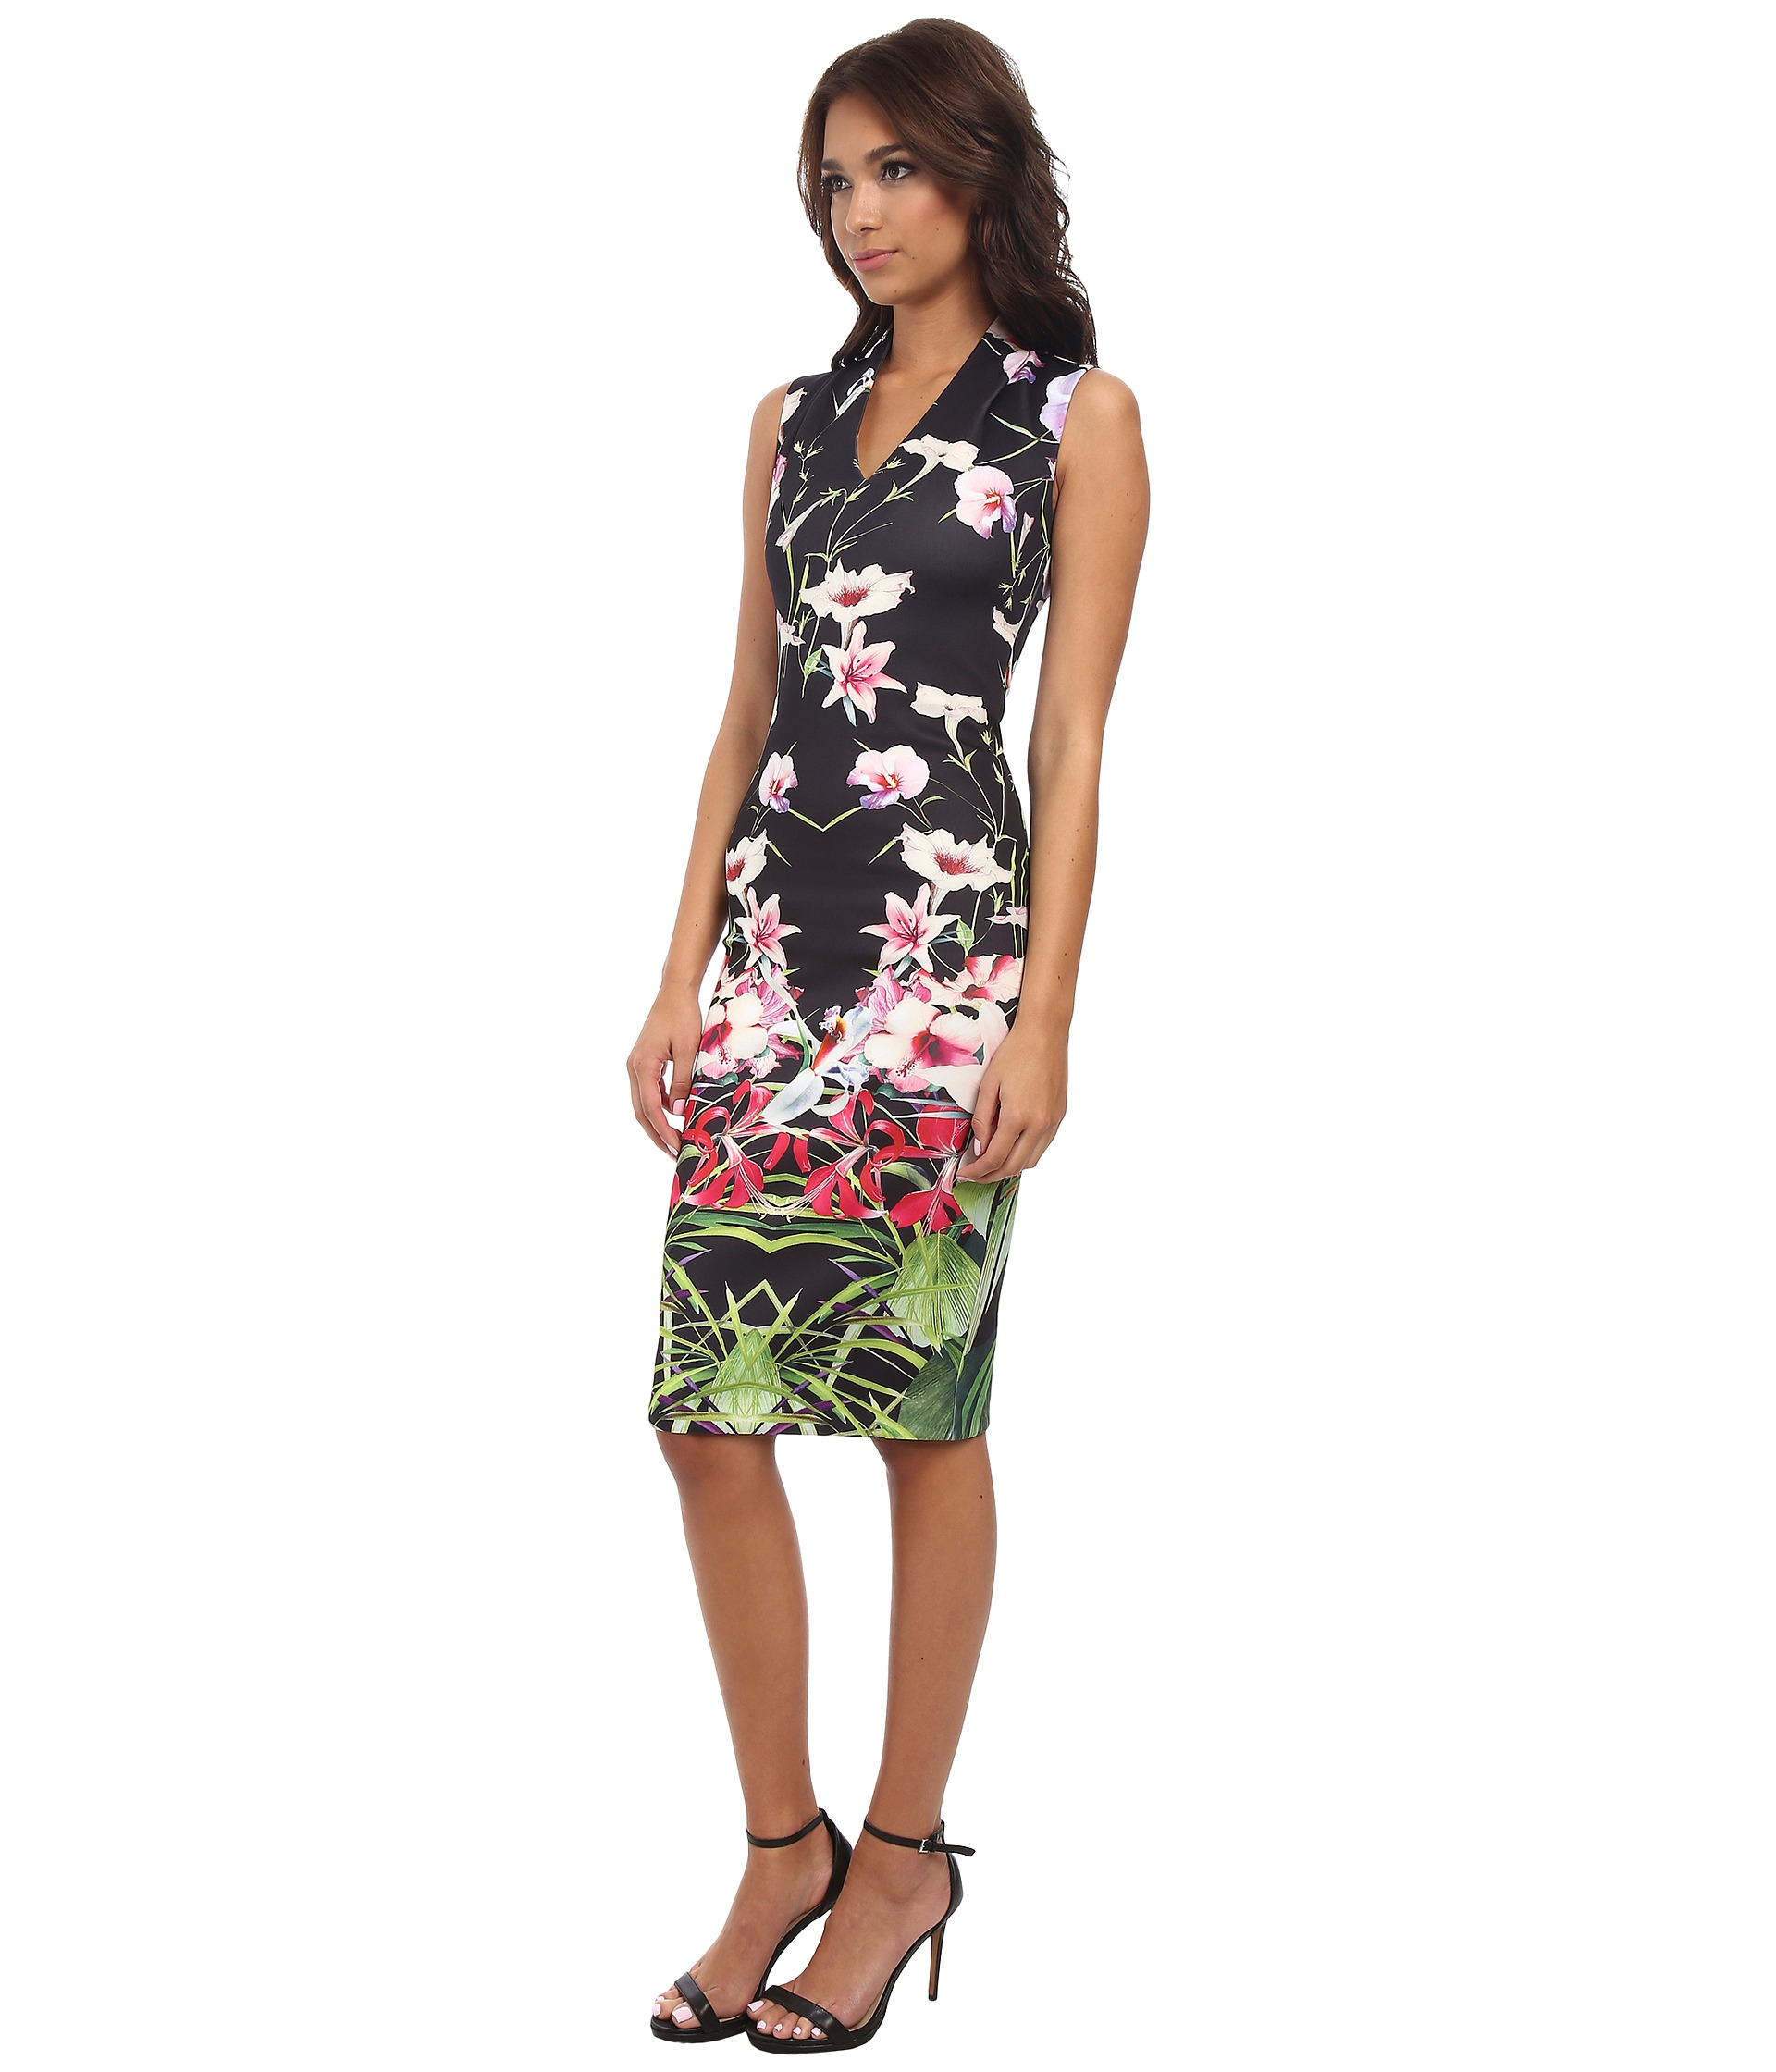 8fe54615b Lyst - Ted Baker Jalita Mirrored Tropics Midi Dress in Black